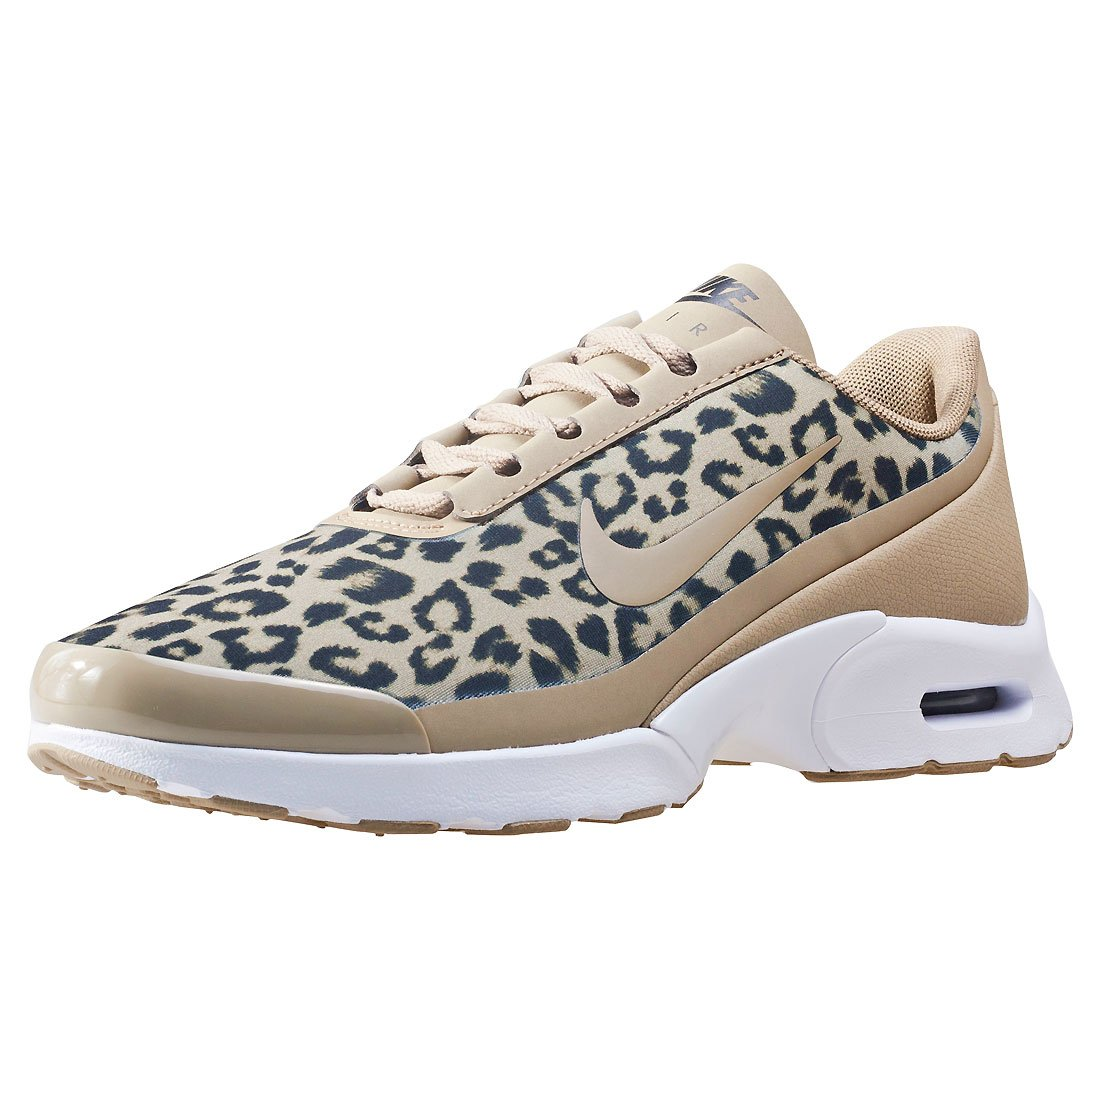 3ae269c47922 Nike Air Max Jewell Print Womens Trainers  Amazon.co.uk  Shoes   Bags